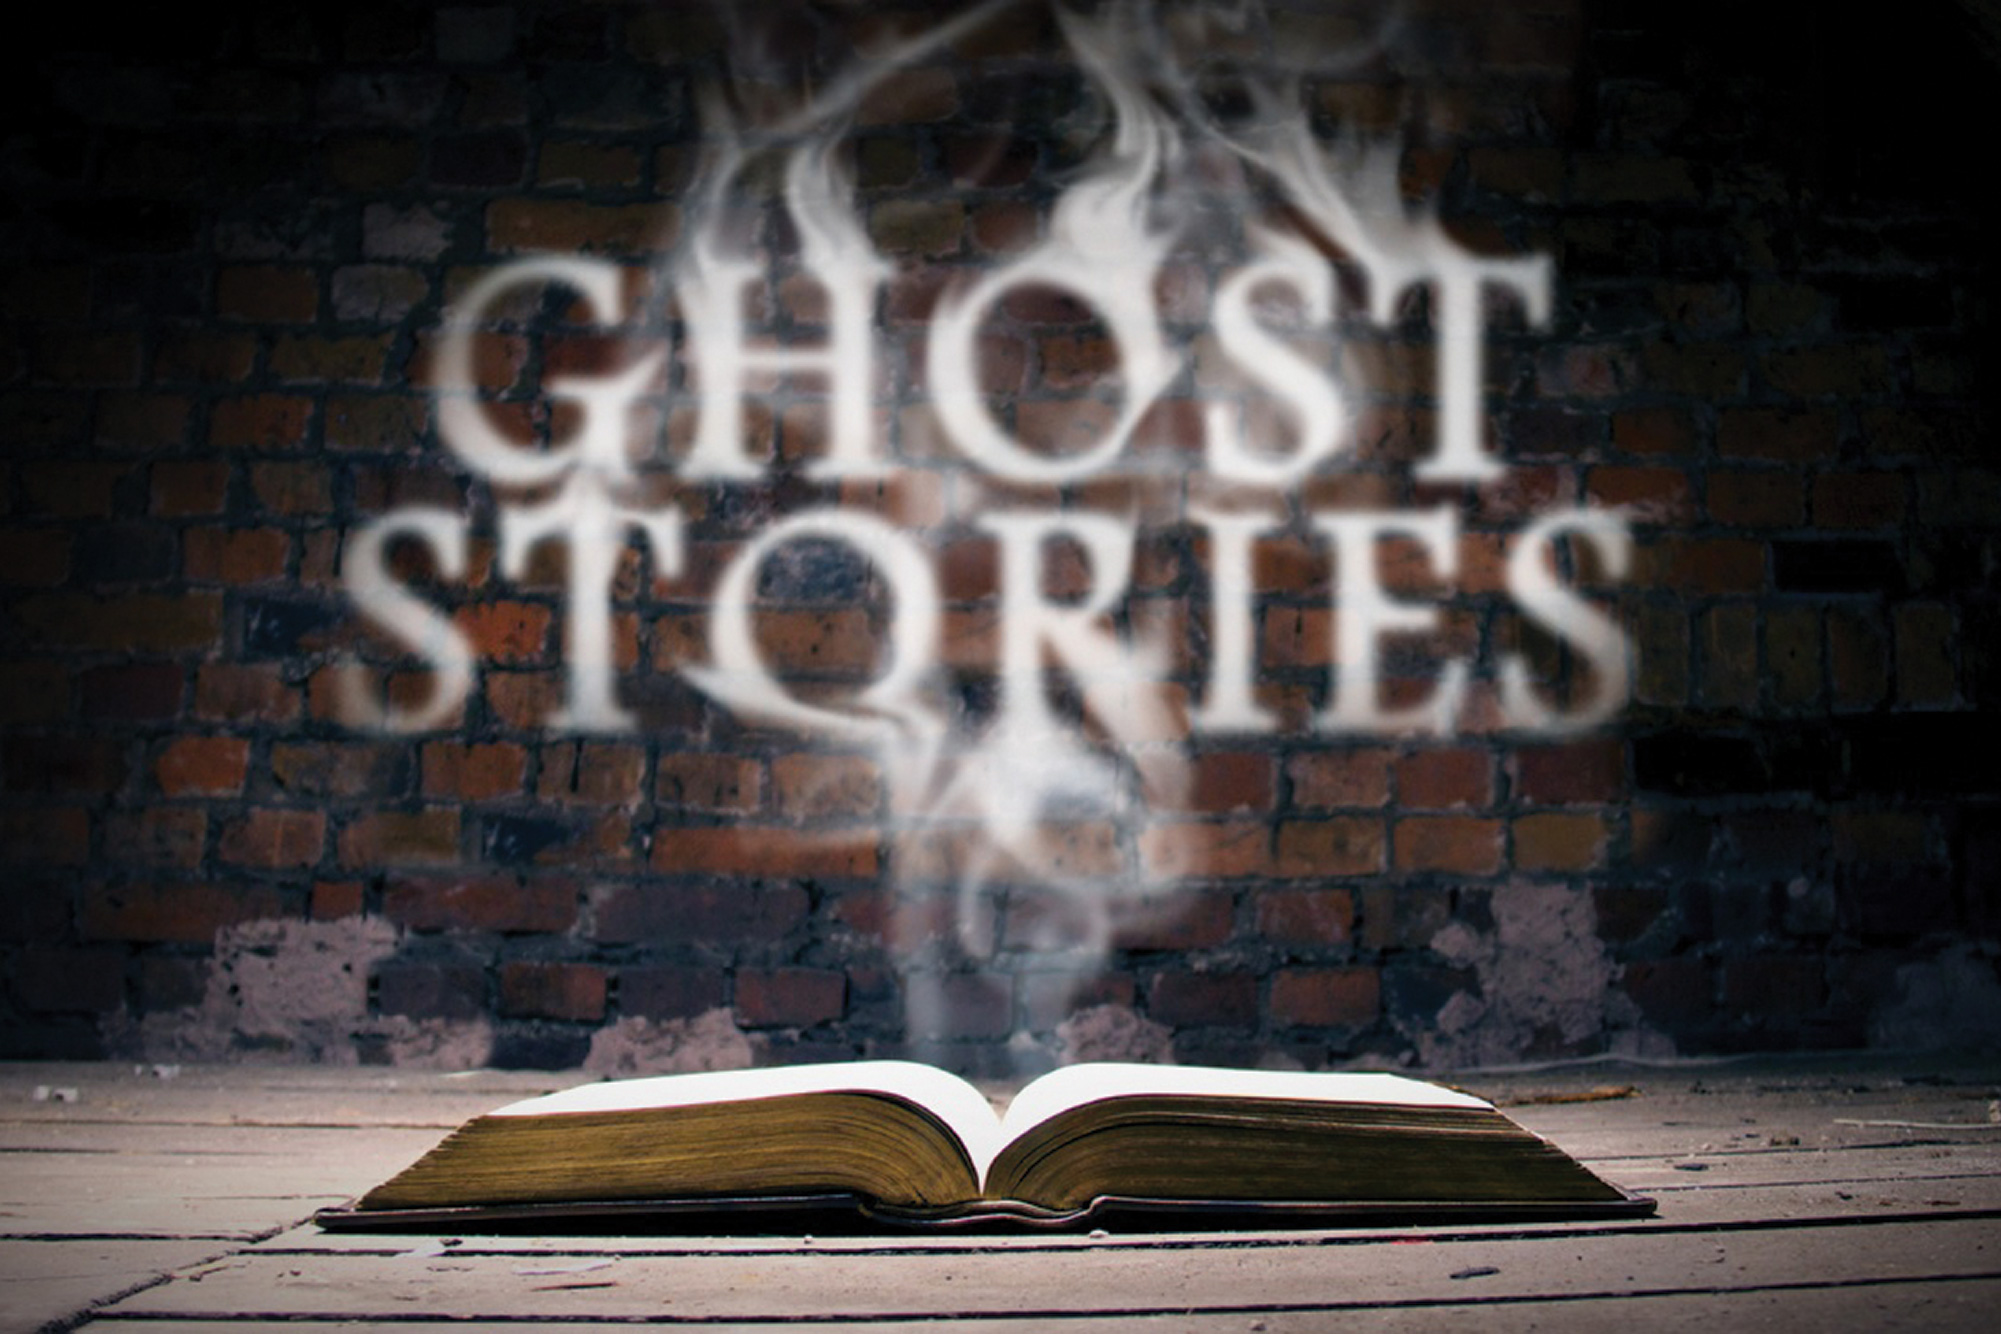 GHOST STORIES AND GHOST WALK